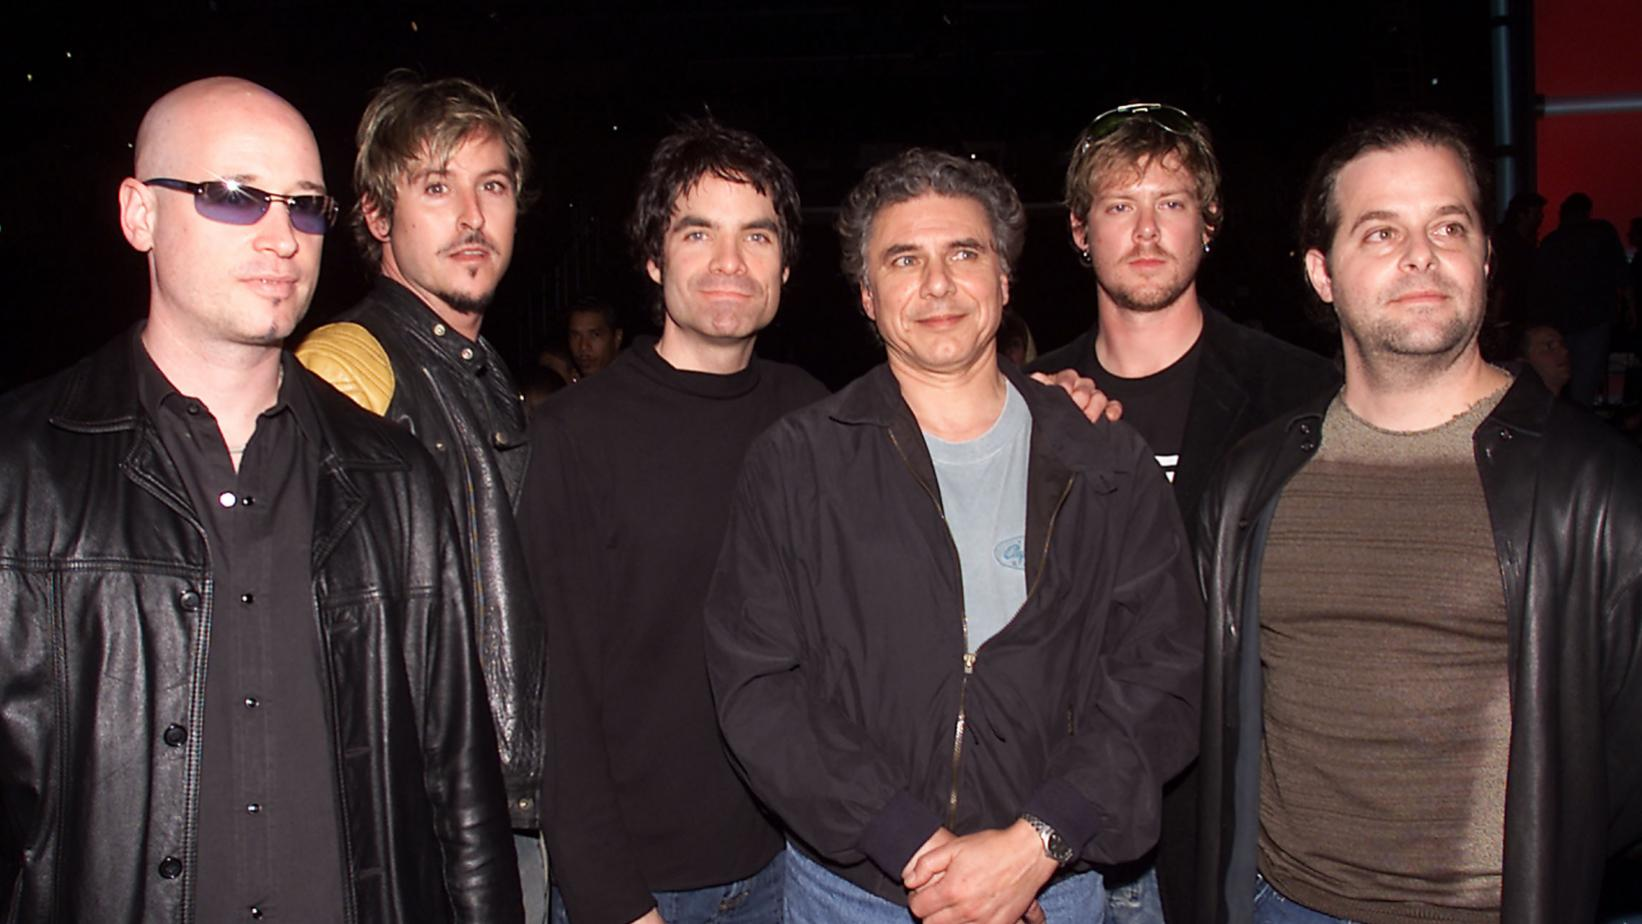 Paul Buckmaster with Train in 2002